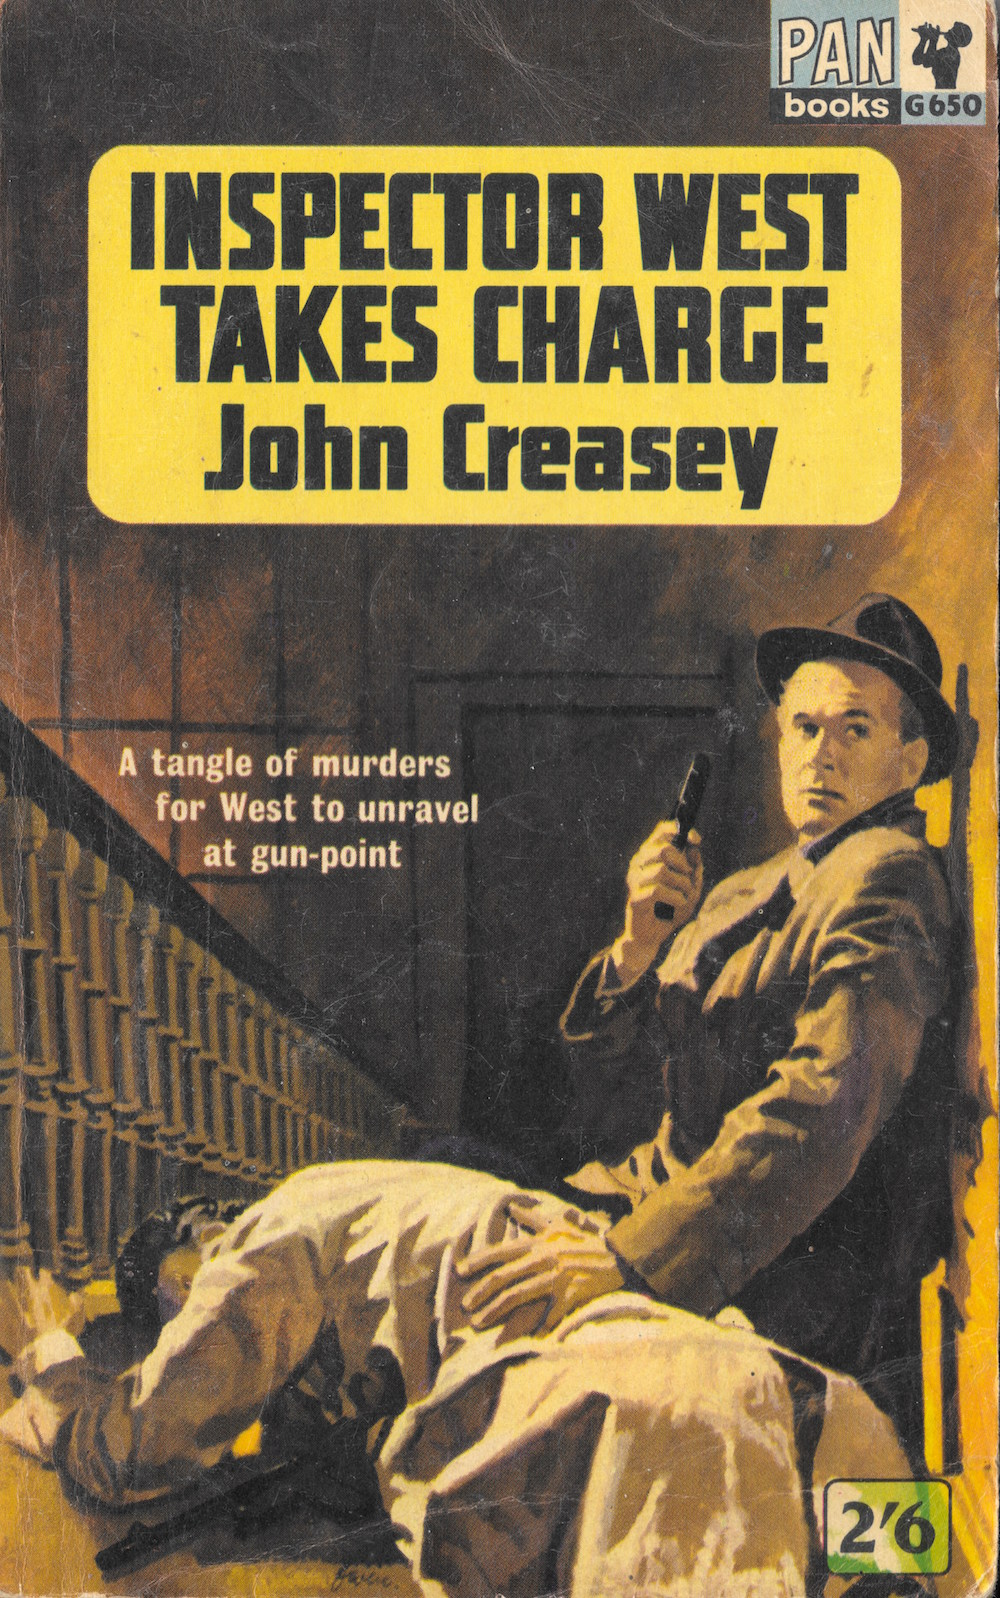 John Creasey, books, art, thriller, Pan Books